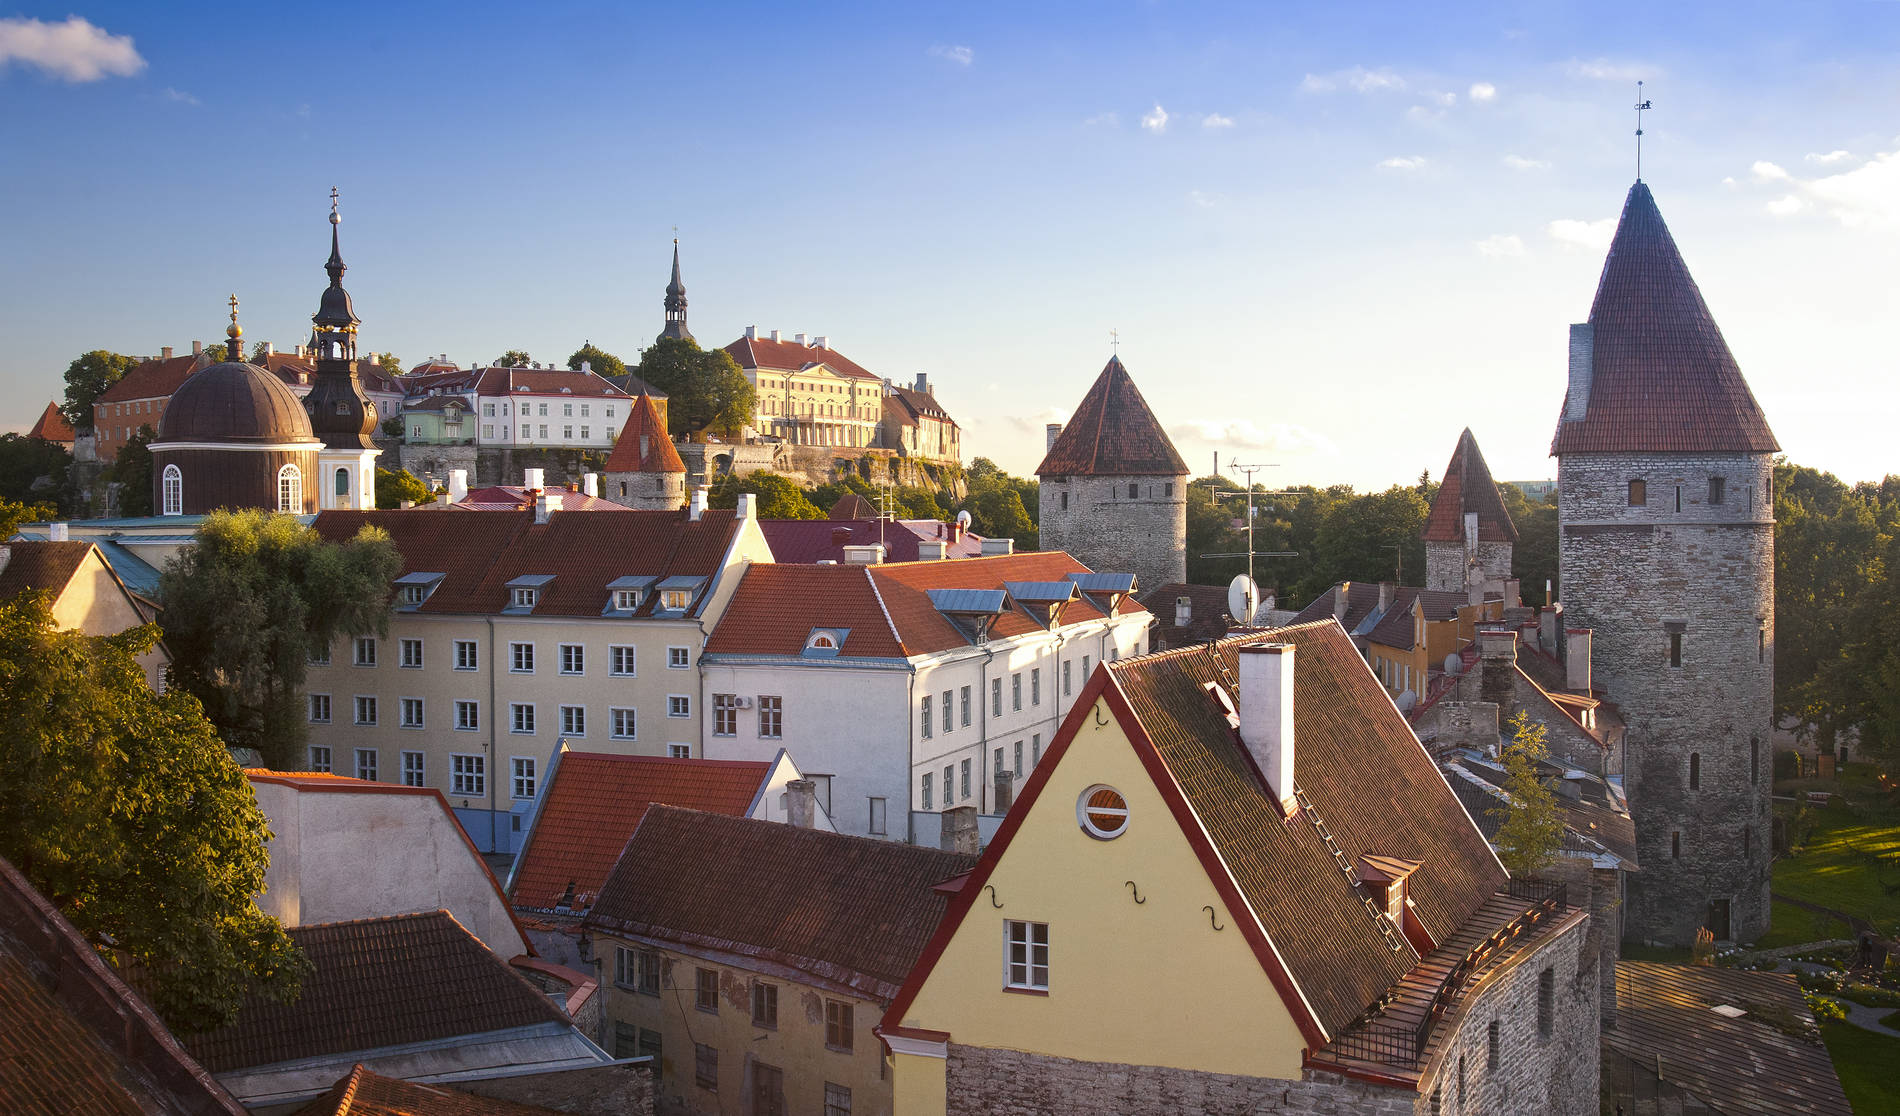 View of Toompea and the red rooftops of Tallinn